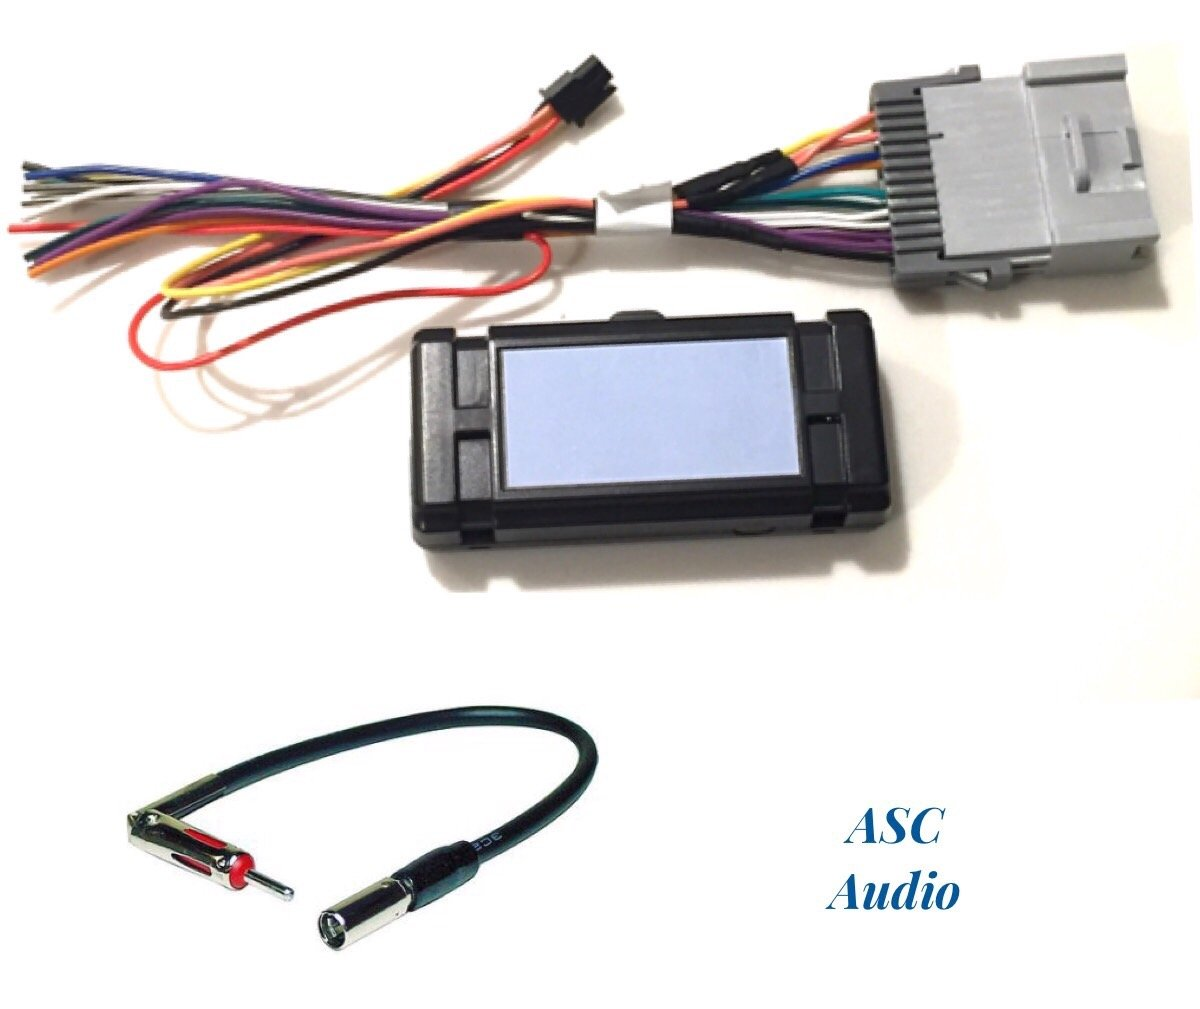 ASC Audio Premuim Car Stereo Radio Wire Harness and Antenna Adapter for Some GM Chevrolet 03-06 Silverado, Tahoe, Suburban, Sierra etc.- Built in 12 Volt Power Wire - Works with and Without Bose/Amp